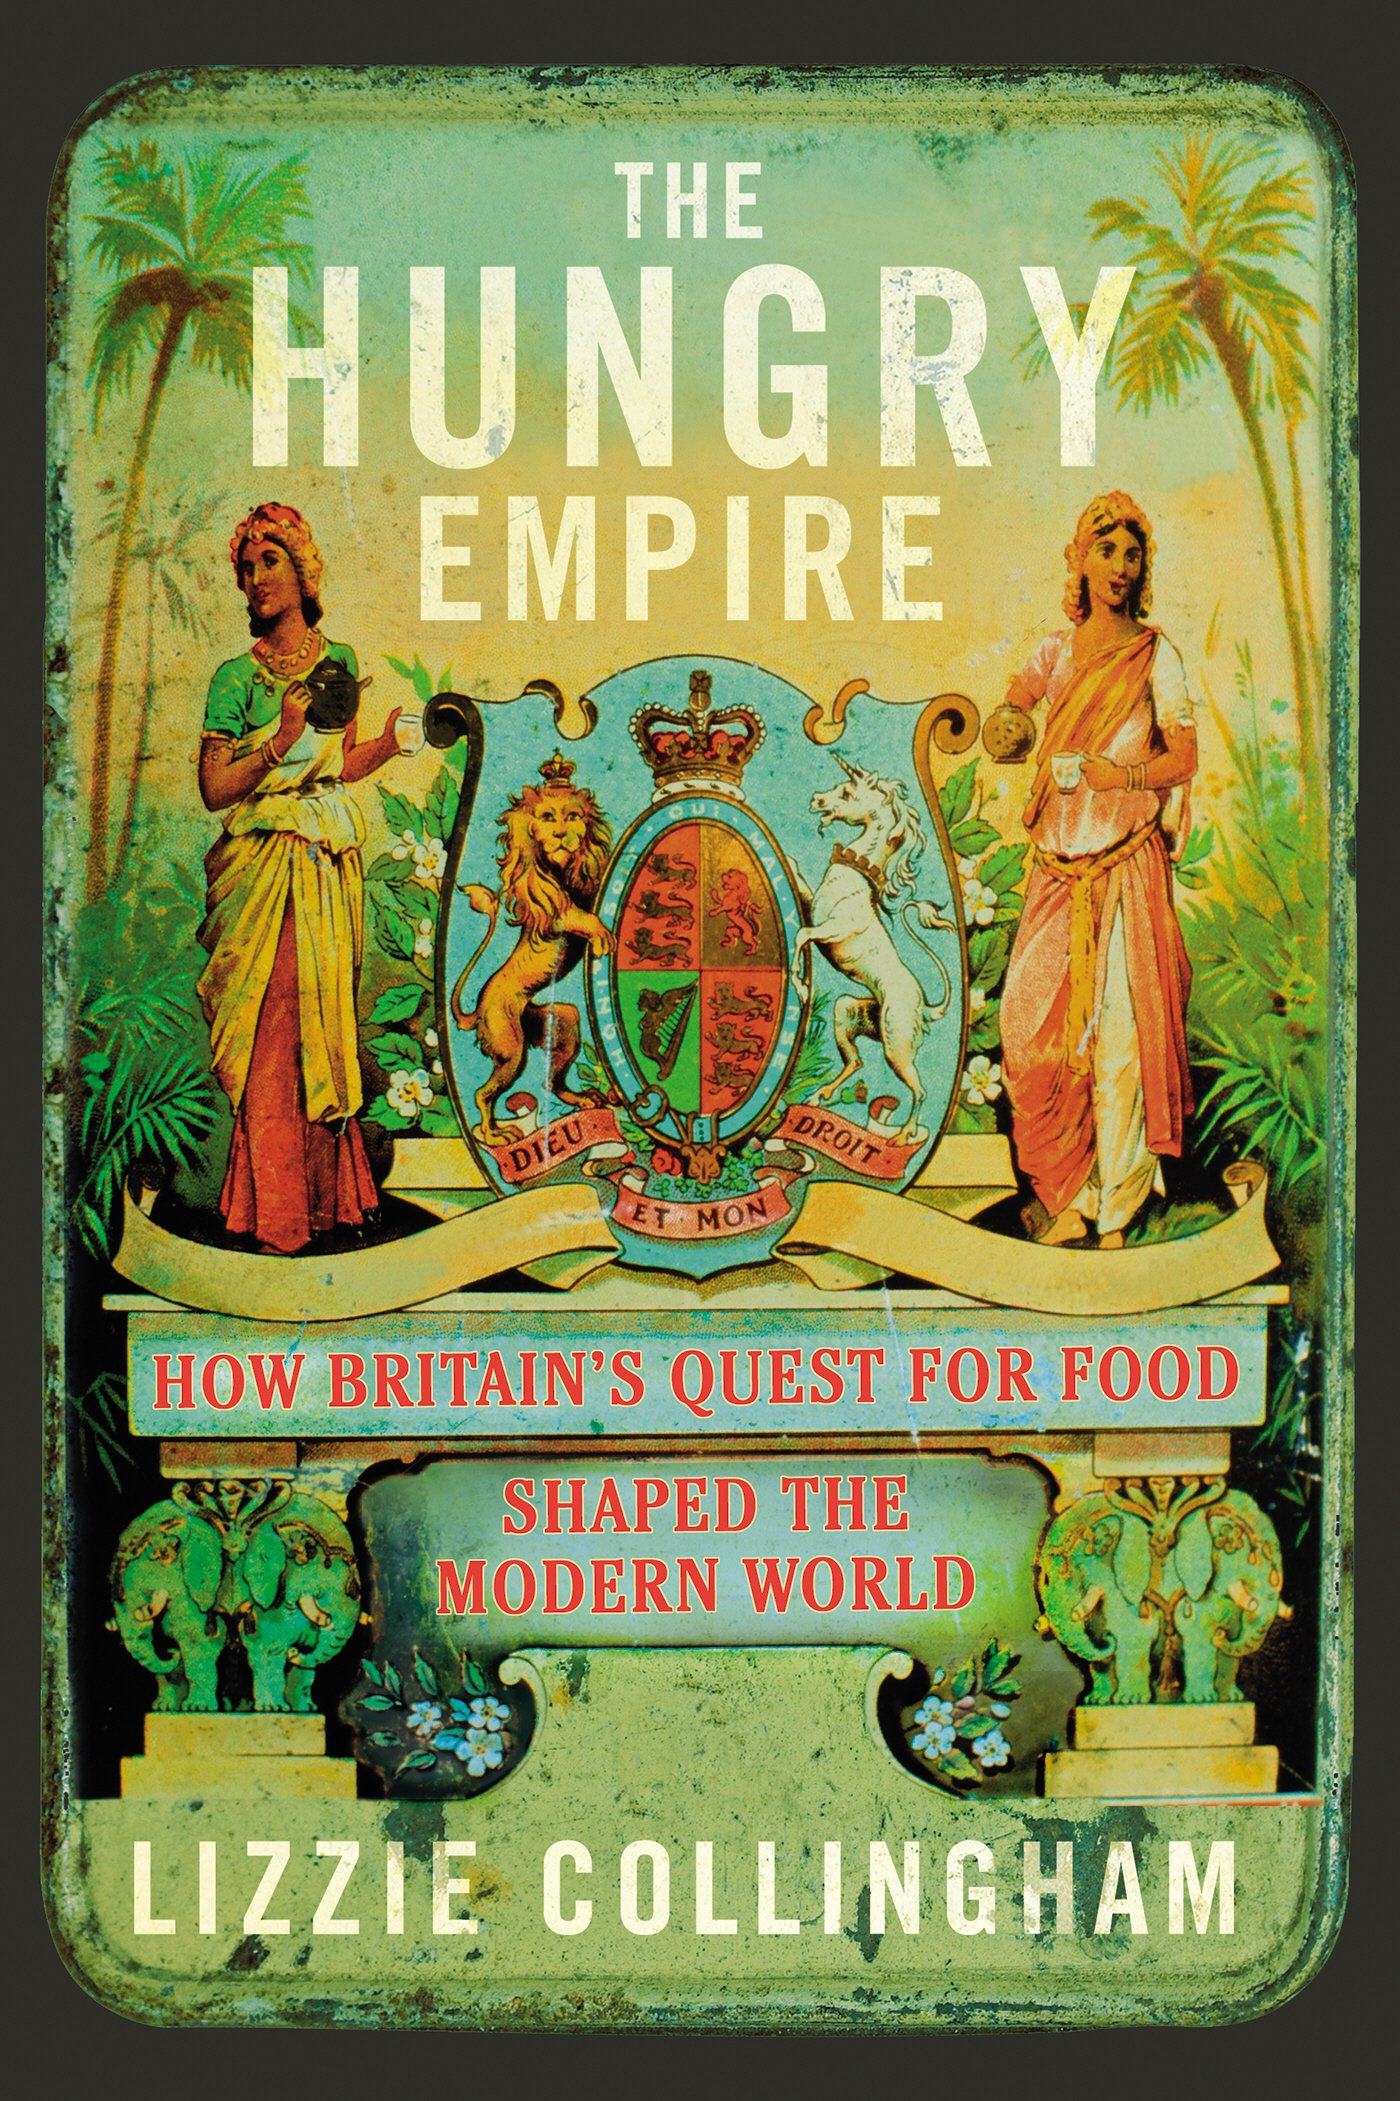 'The hungry empire: how Britain's quest for food shaped the modern world', by Lizzie CollinghamBooklist The Hungry Empire